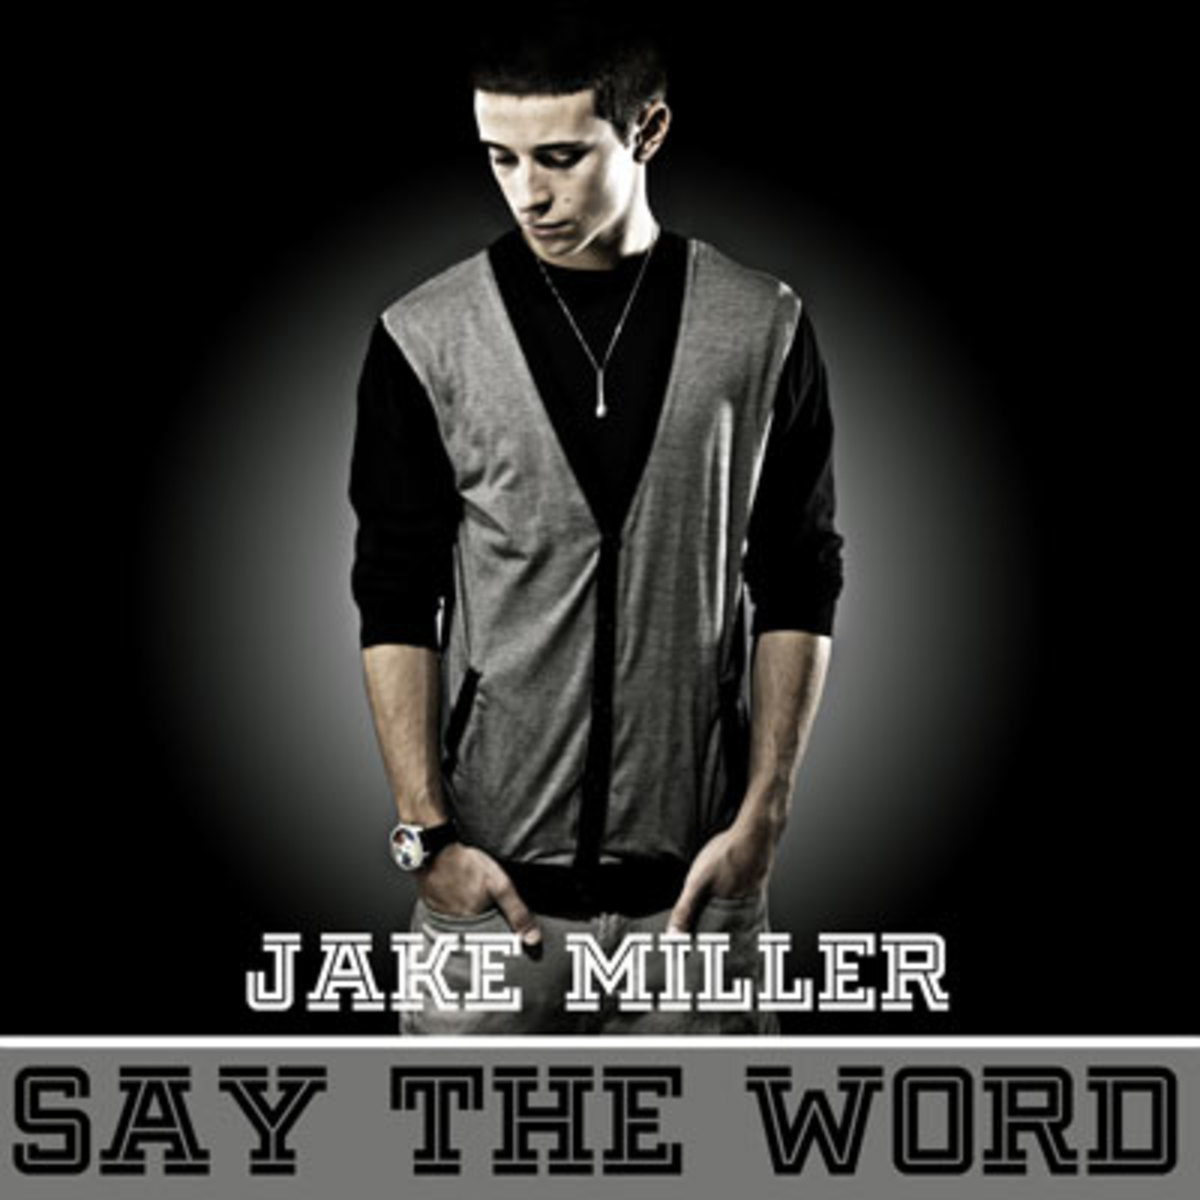 jakemiller-saytheword.jpg